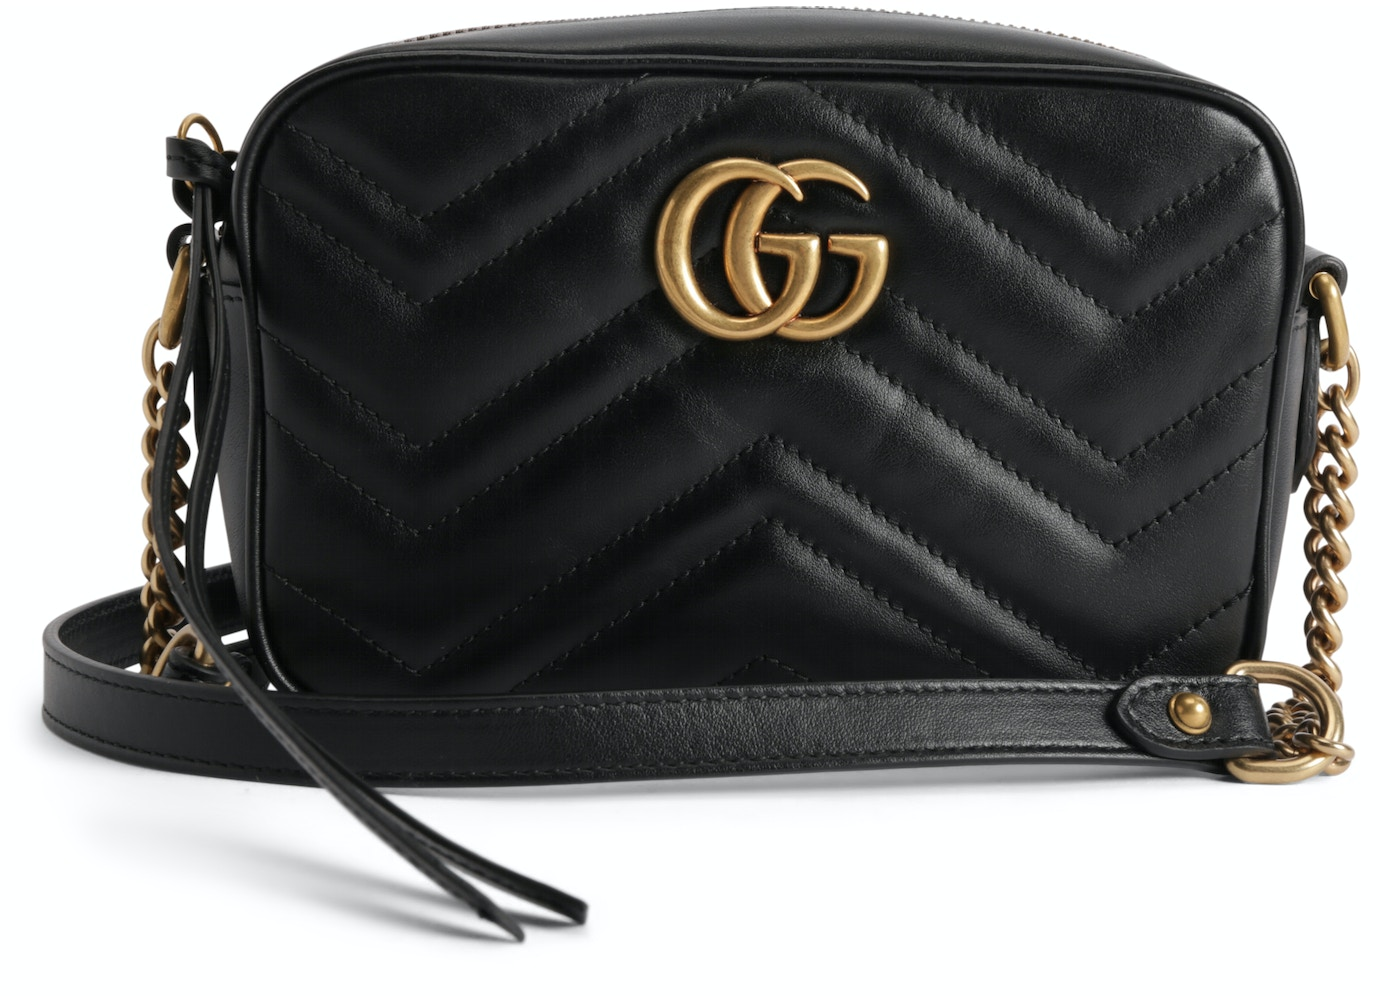 cf7868b63ea0 Gucci Bag Marmont Sale | Stanford Center for Opportunity Policy in ...